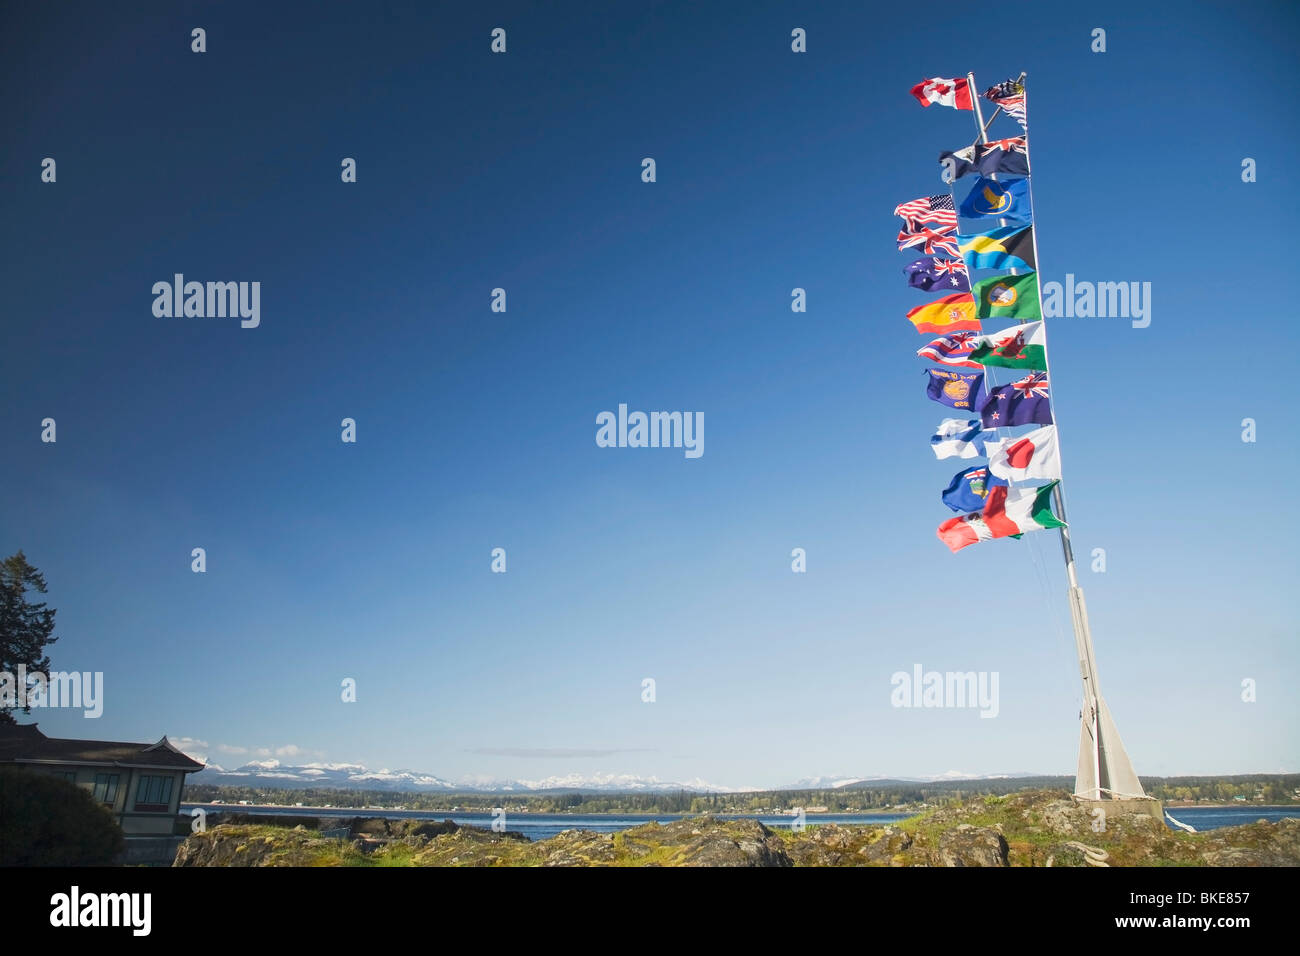 International Flags, Campbell River, British Columbia, Canada